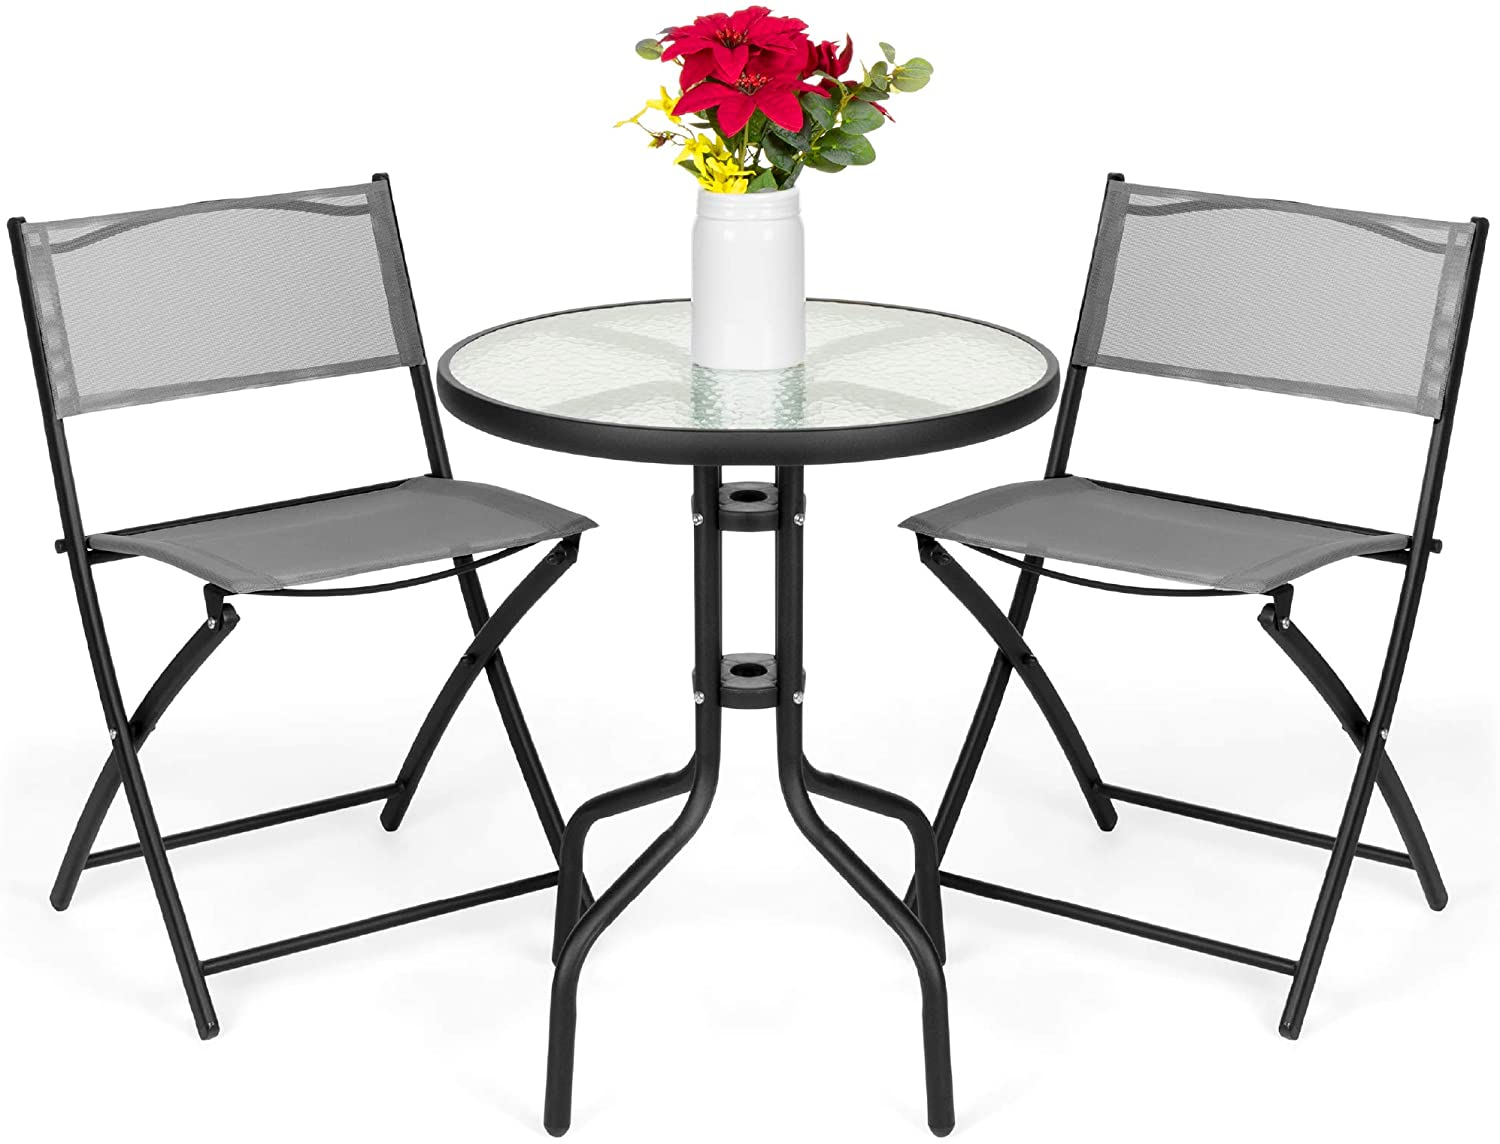 Amazon Com Best Choice Products 3 Piece Patio Bistro Dining Furniture Set W Textured Glass Table Top 2 Folding Chairs Steel Frame Polyester Fabric Gray Garden Outdoor